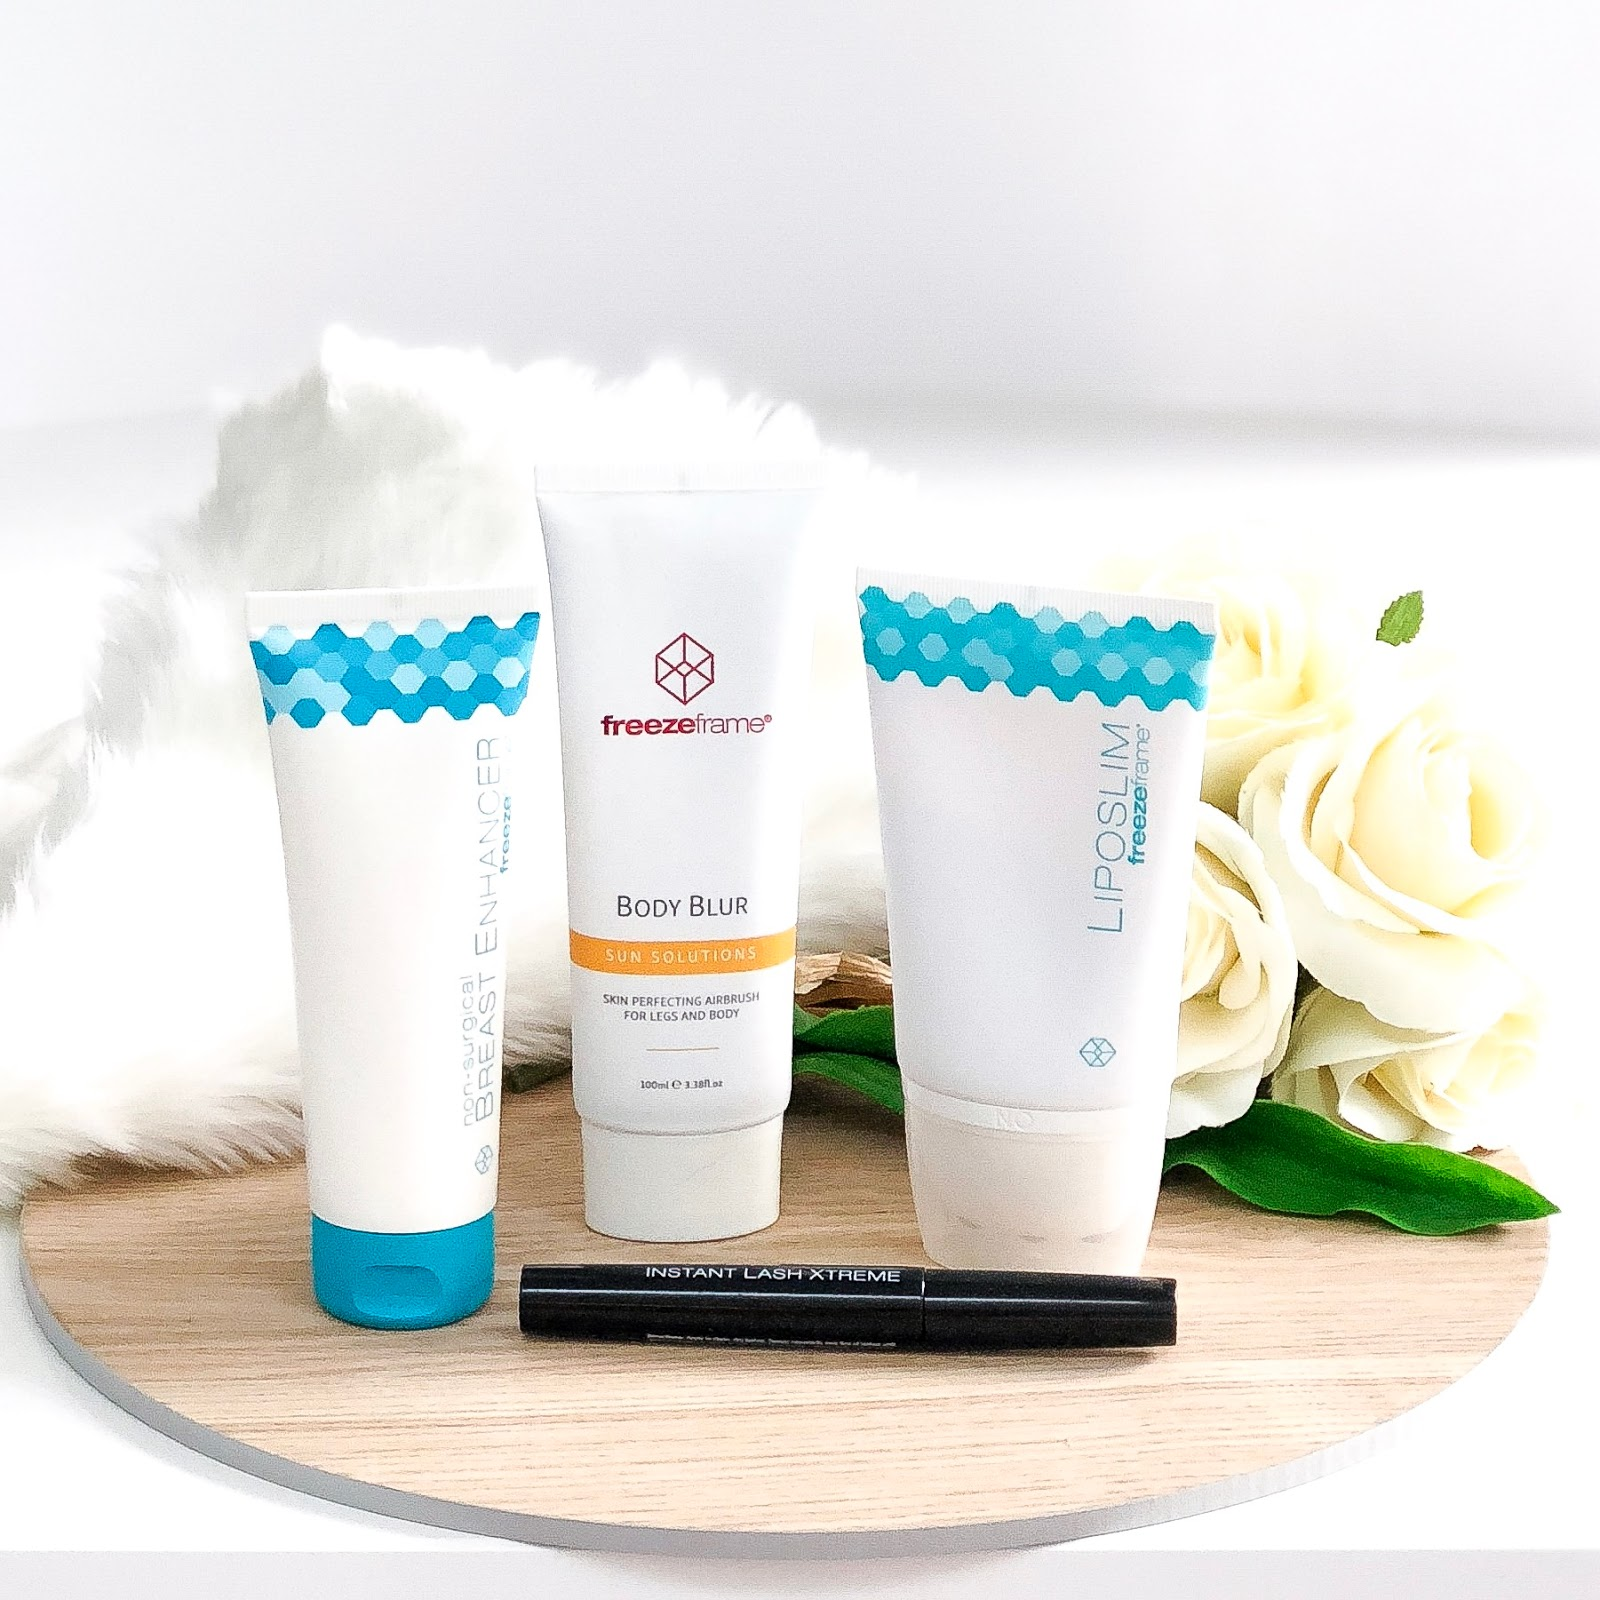 0594657cd4d PRODUCT REVIEW: FREEZEFRAME BODY BLUR, LIPOSLIM, BREAST ENHANCER AND INSTANT  LASH EXTREME